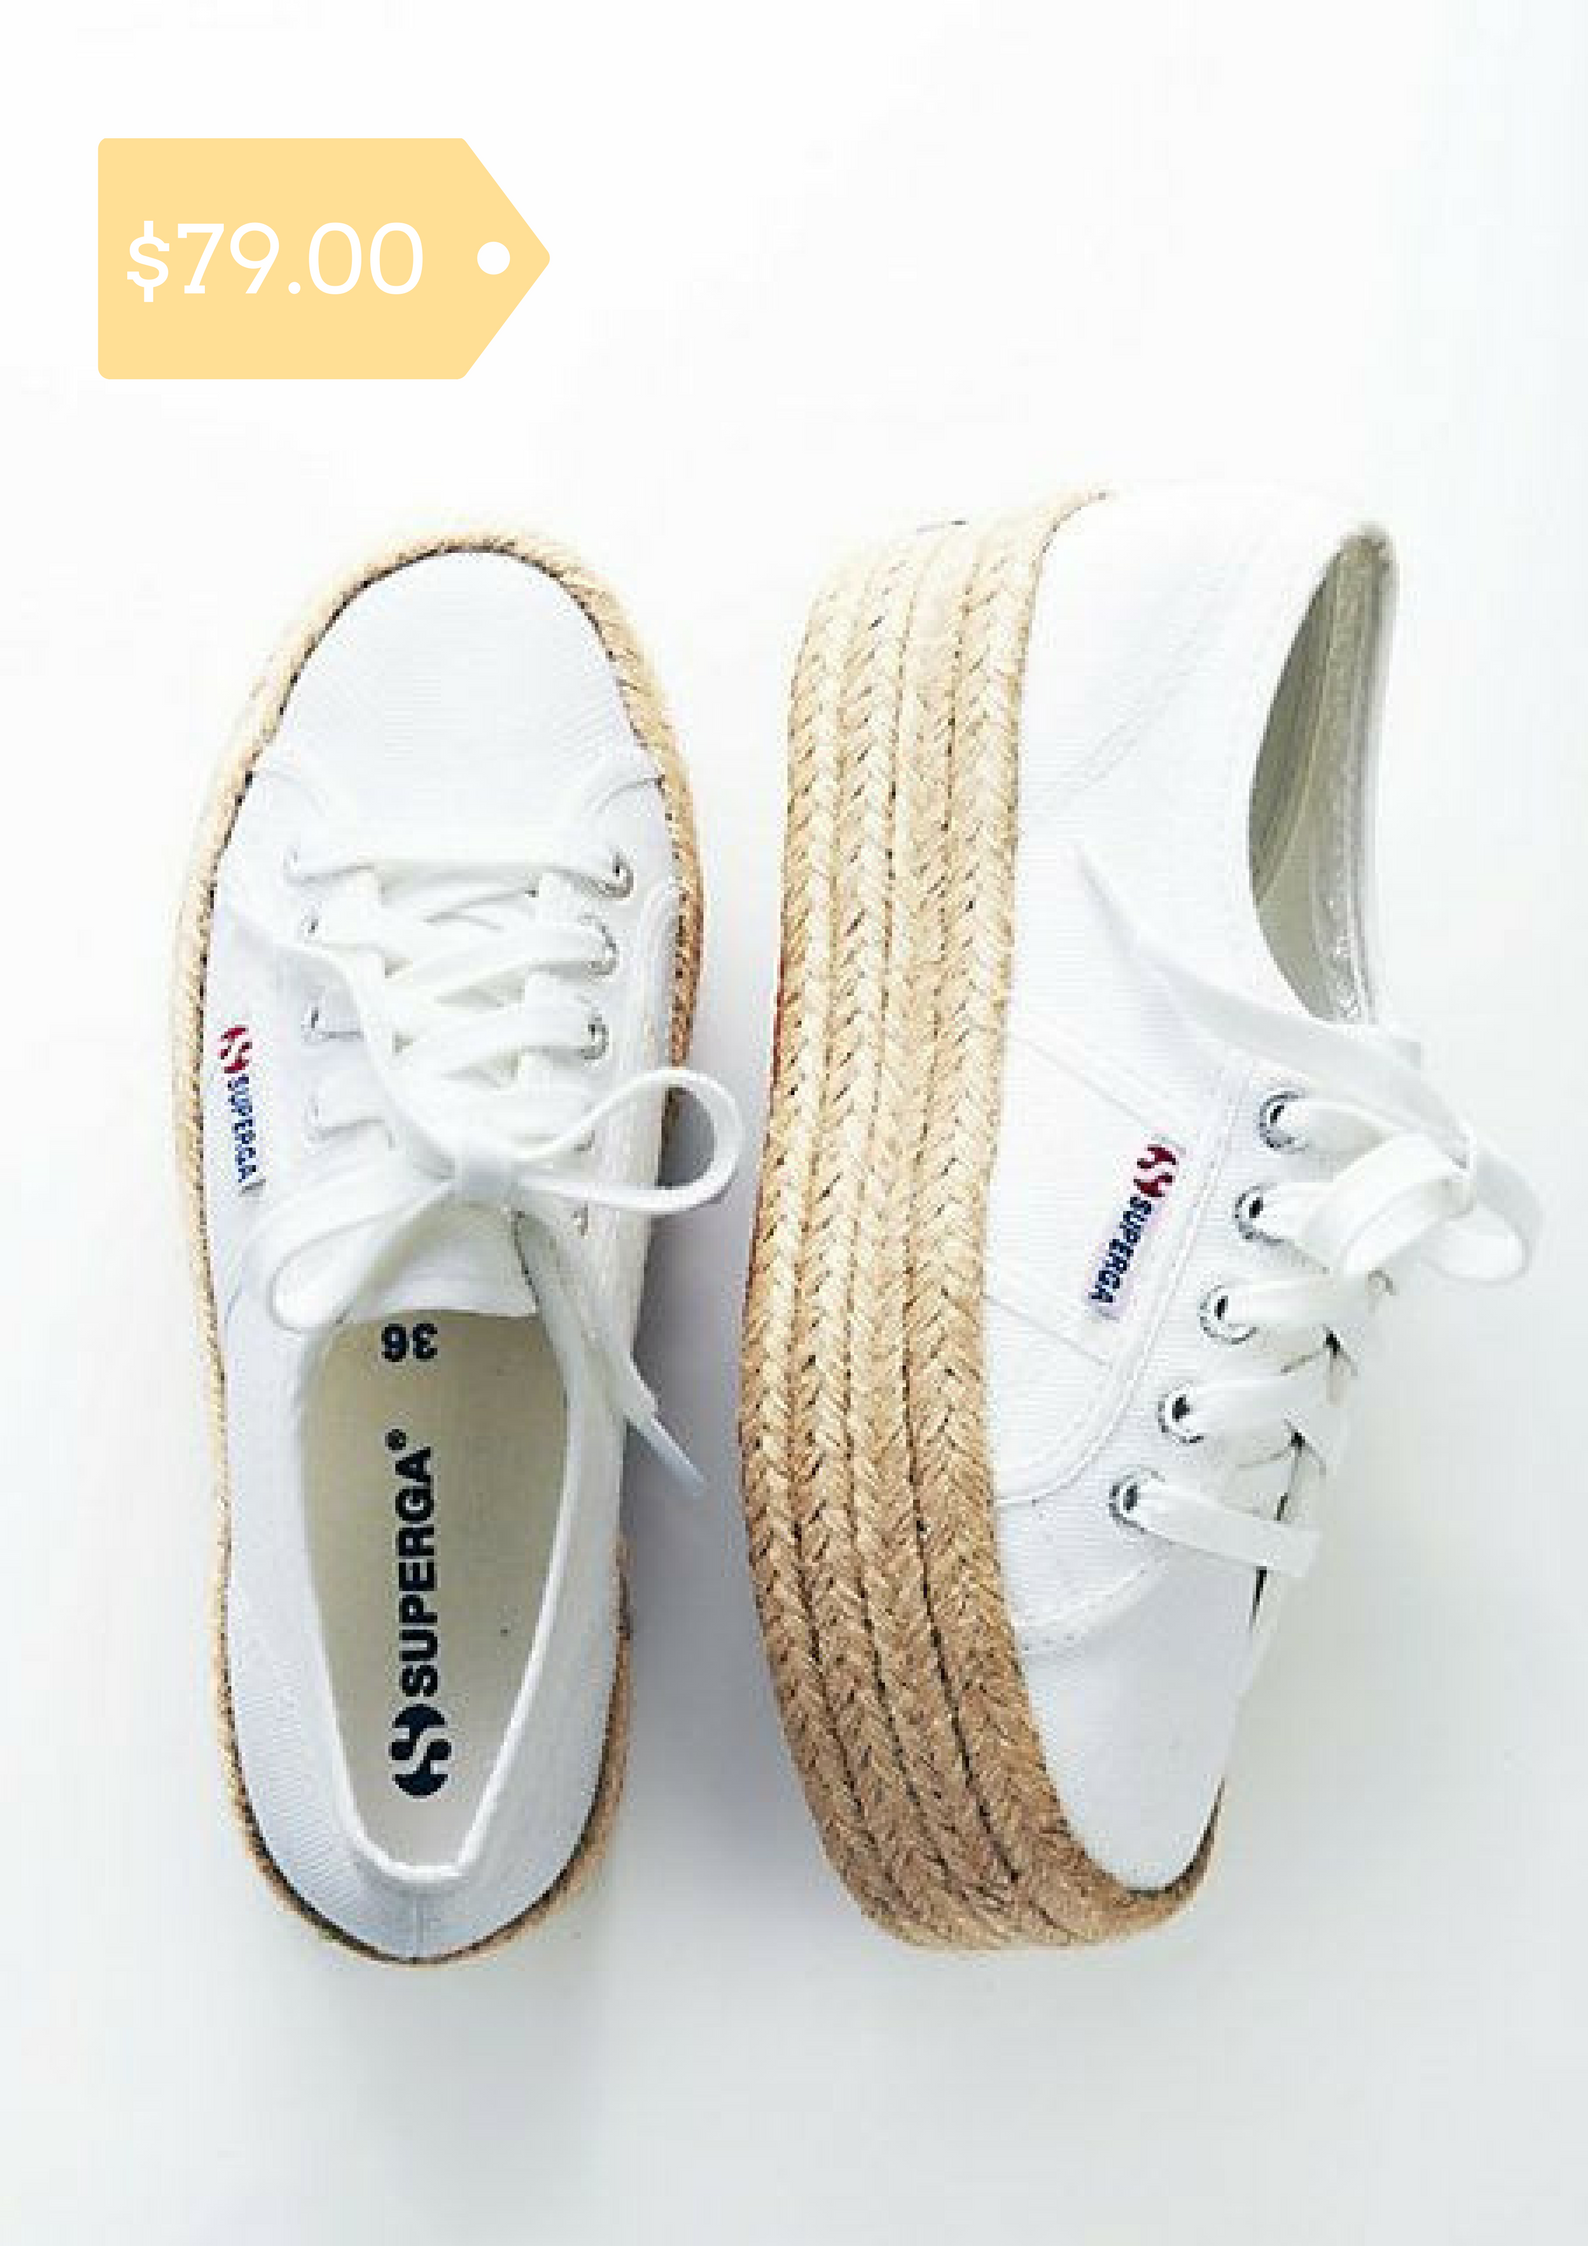 dac8033e6fb2 These Superga sneakers are the classics you know and love refreshed with a  fun, platform sole in raffia.